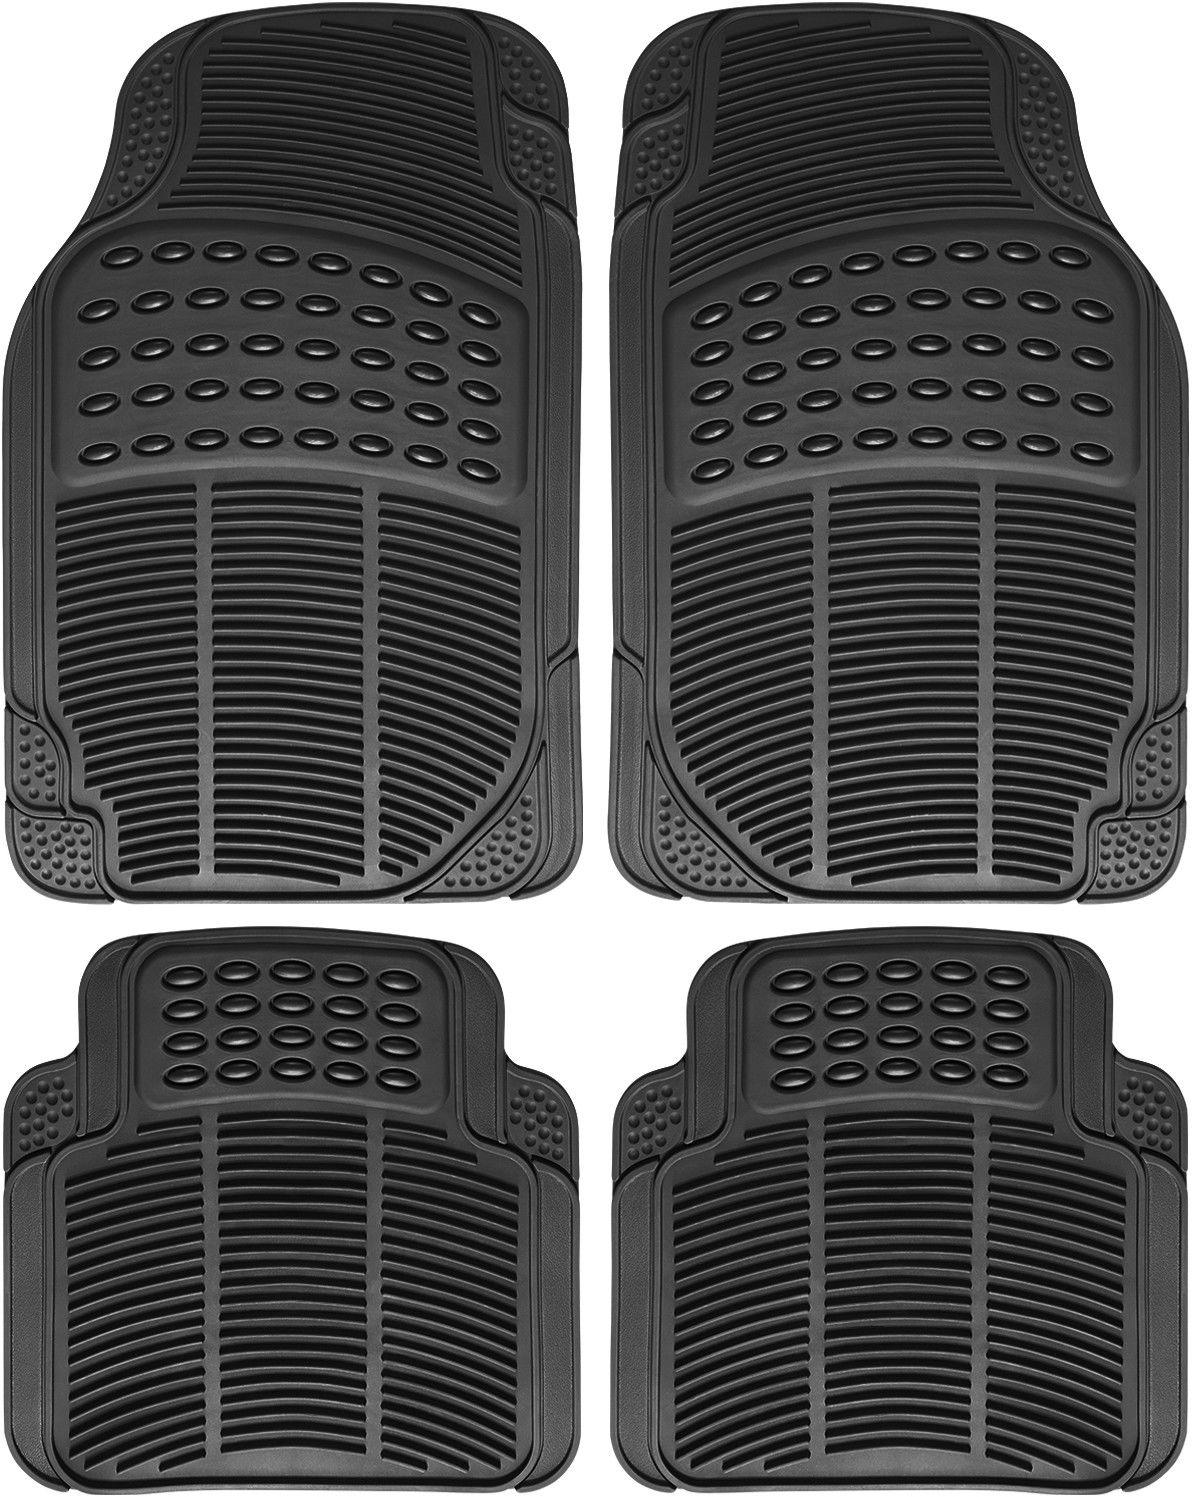 hight resolution of great auto floor mat for ford car truck suv van 4pc full set all weather rubber black 2017 2018